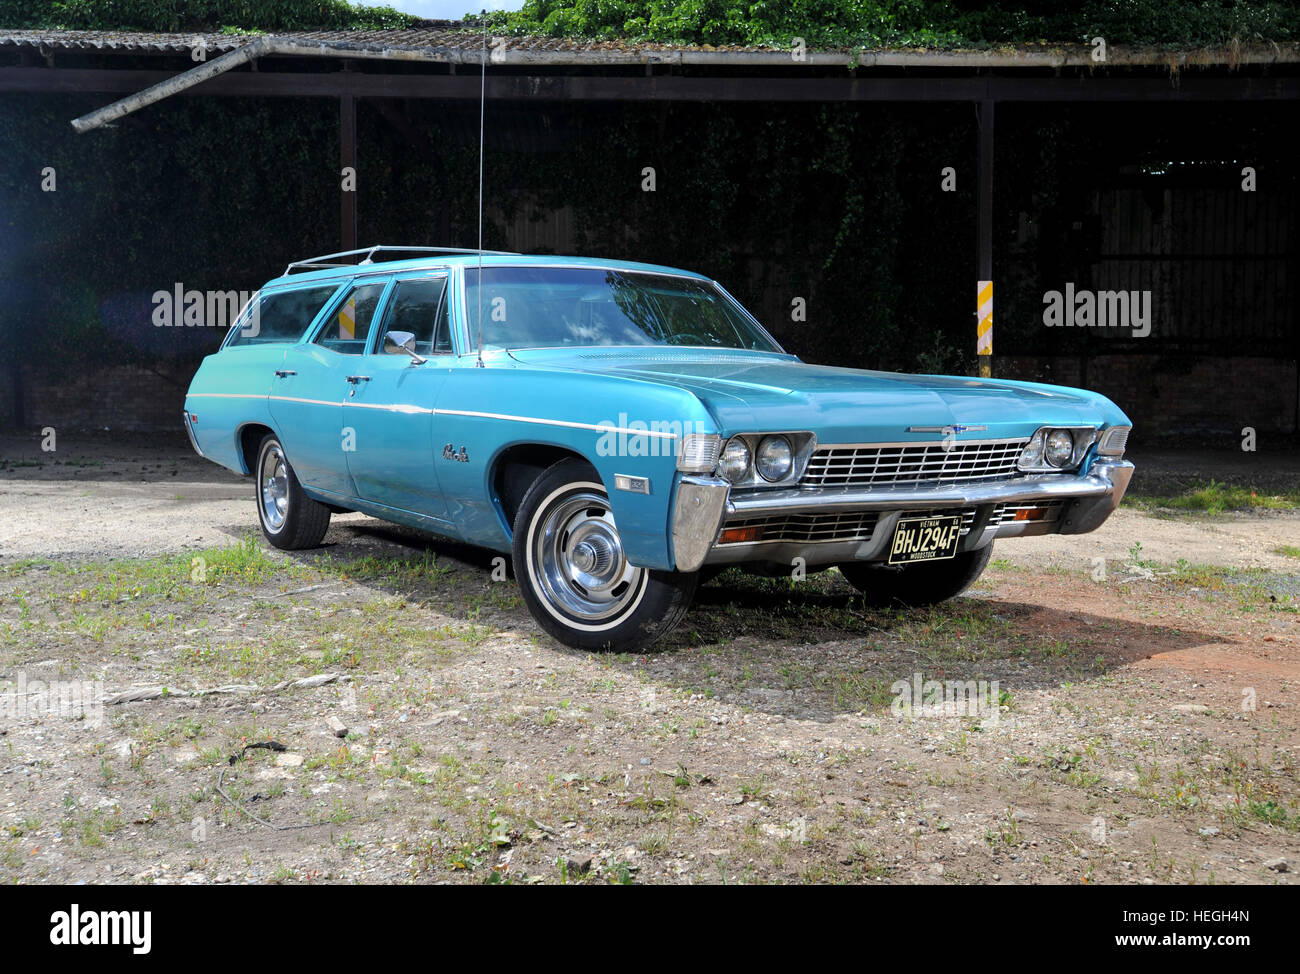 Wagon Chevrolet Stock Photos Images Alamy 1966 Bel Air 1967 Station Classic American Car Image